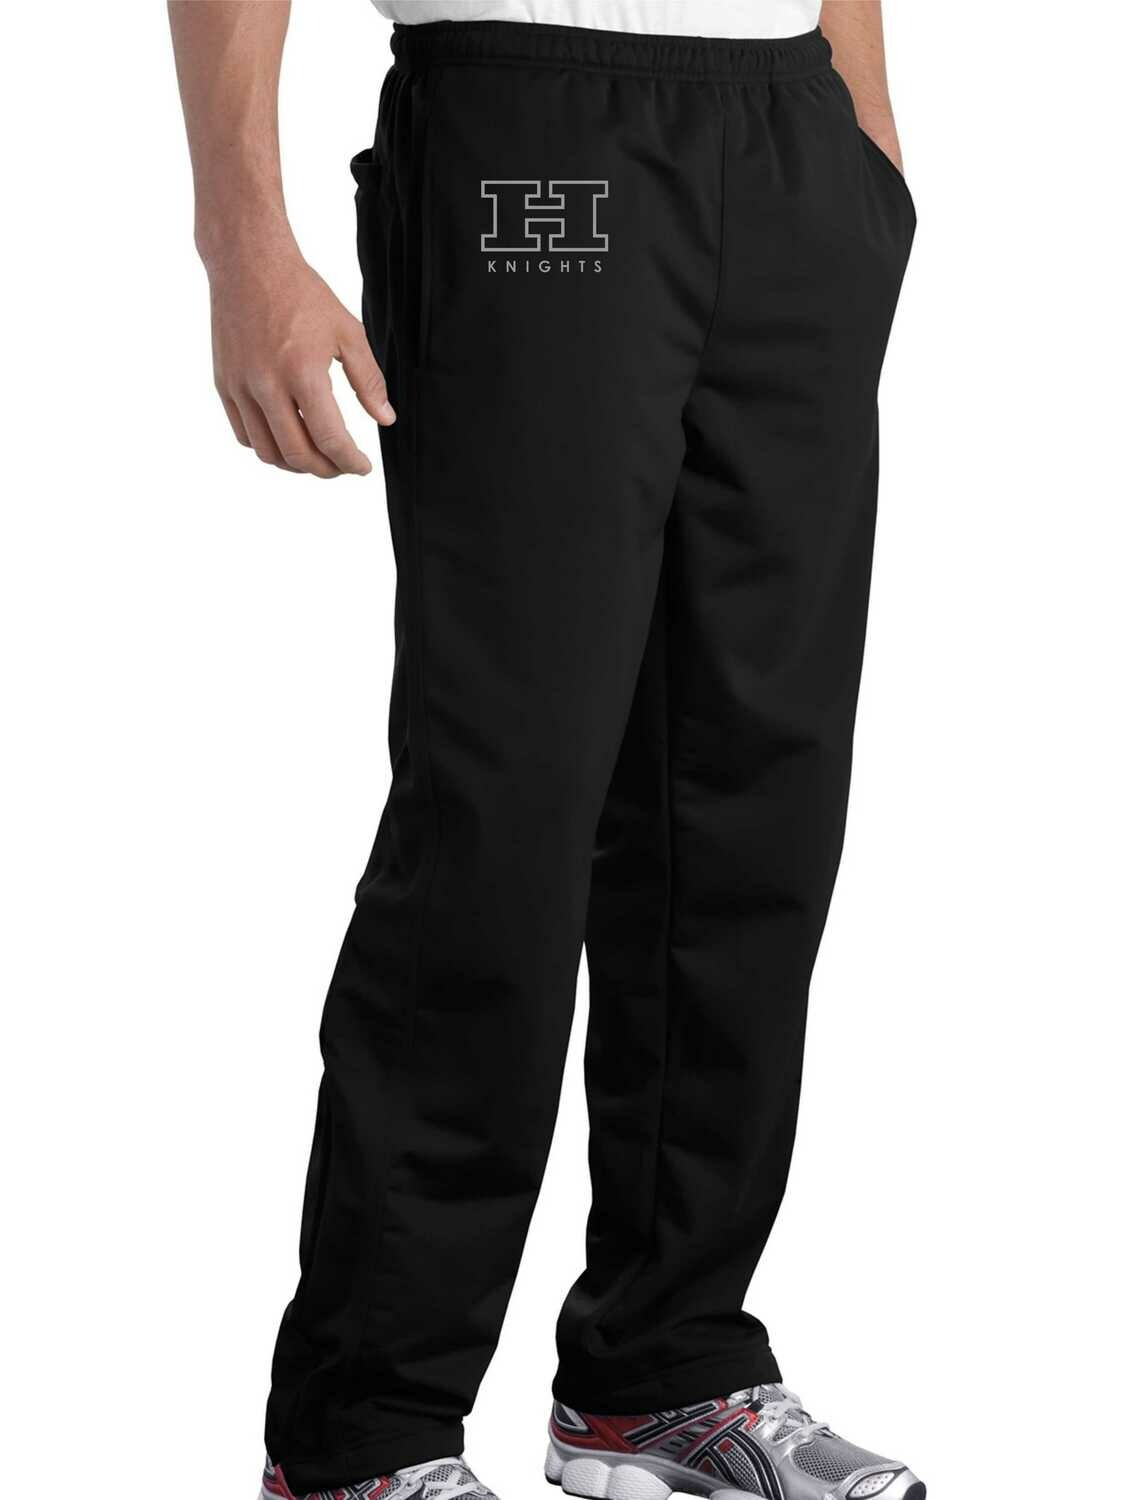 Hanks Knights Track Pants